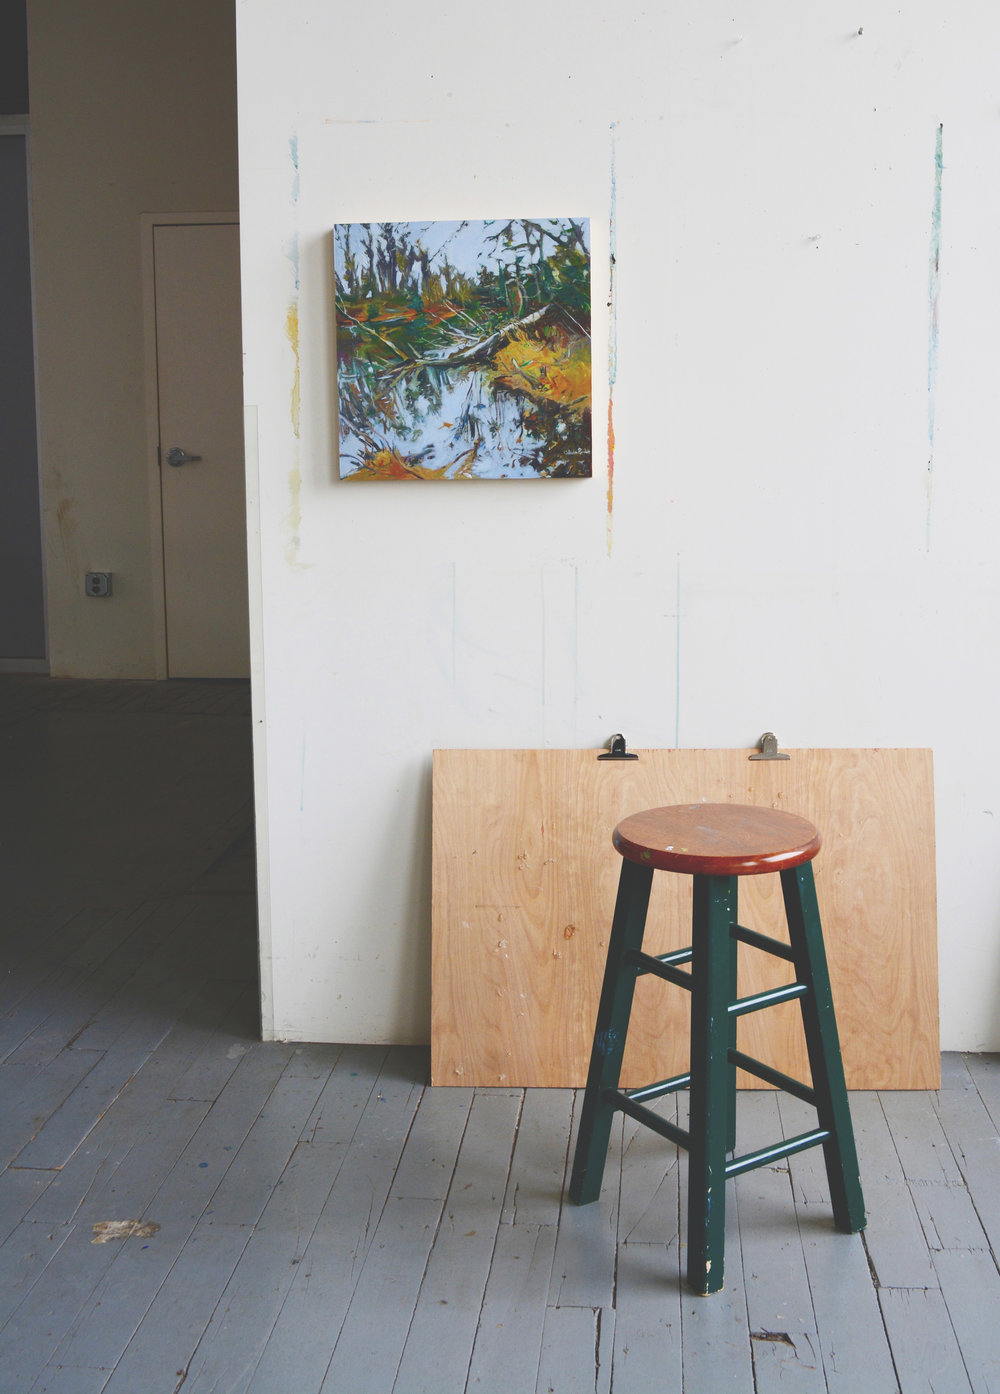 Private Buyer - Paintings are often bought right out of the studio or from the local gallery by individuals desiring to add to their art collection.